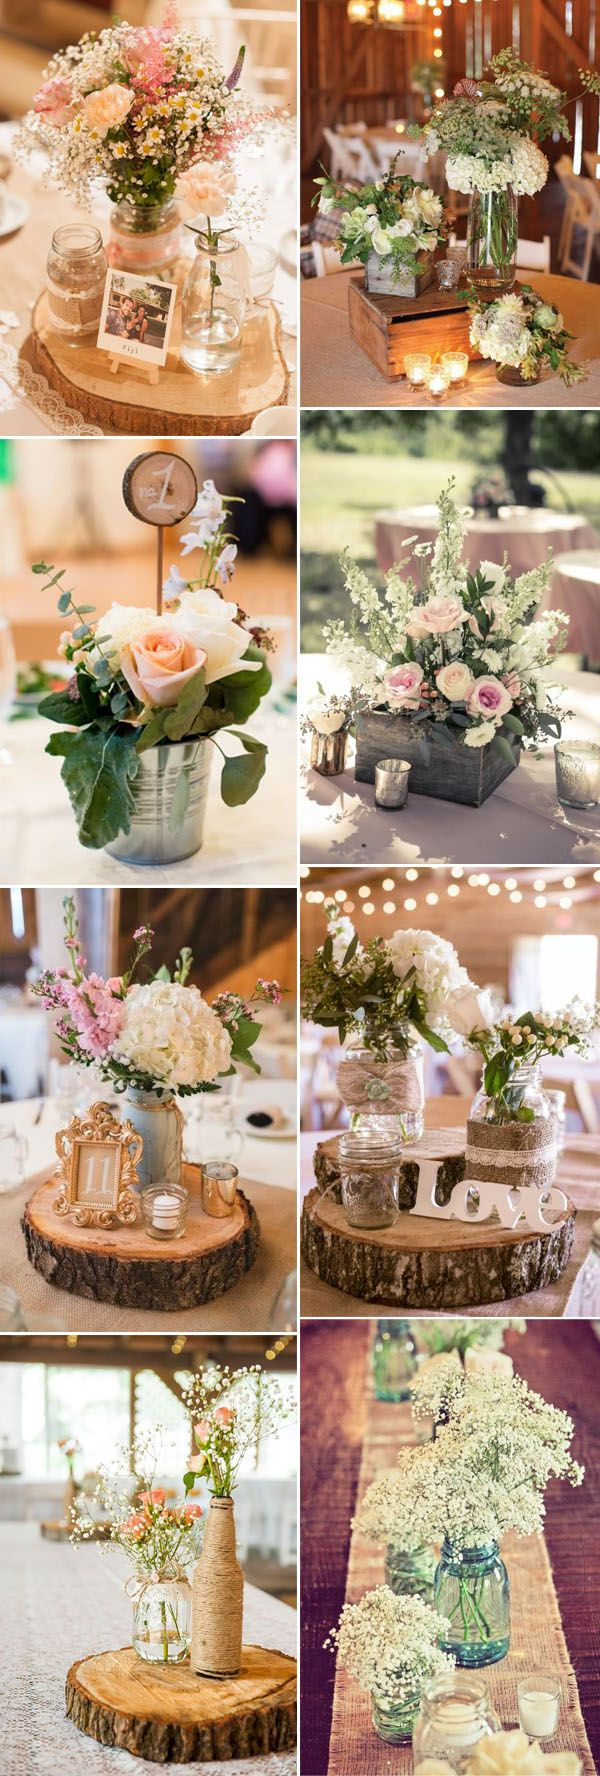 Best 25 rustic wedding centerpieces ideas on pinterest rustic creative rustic wedding centerpieces ideas junglespirit Choice Image